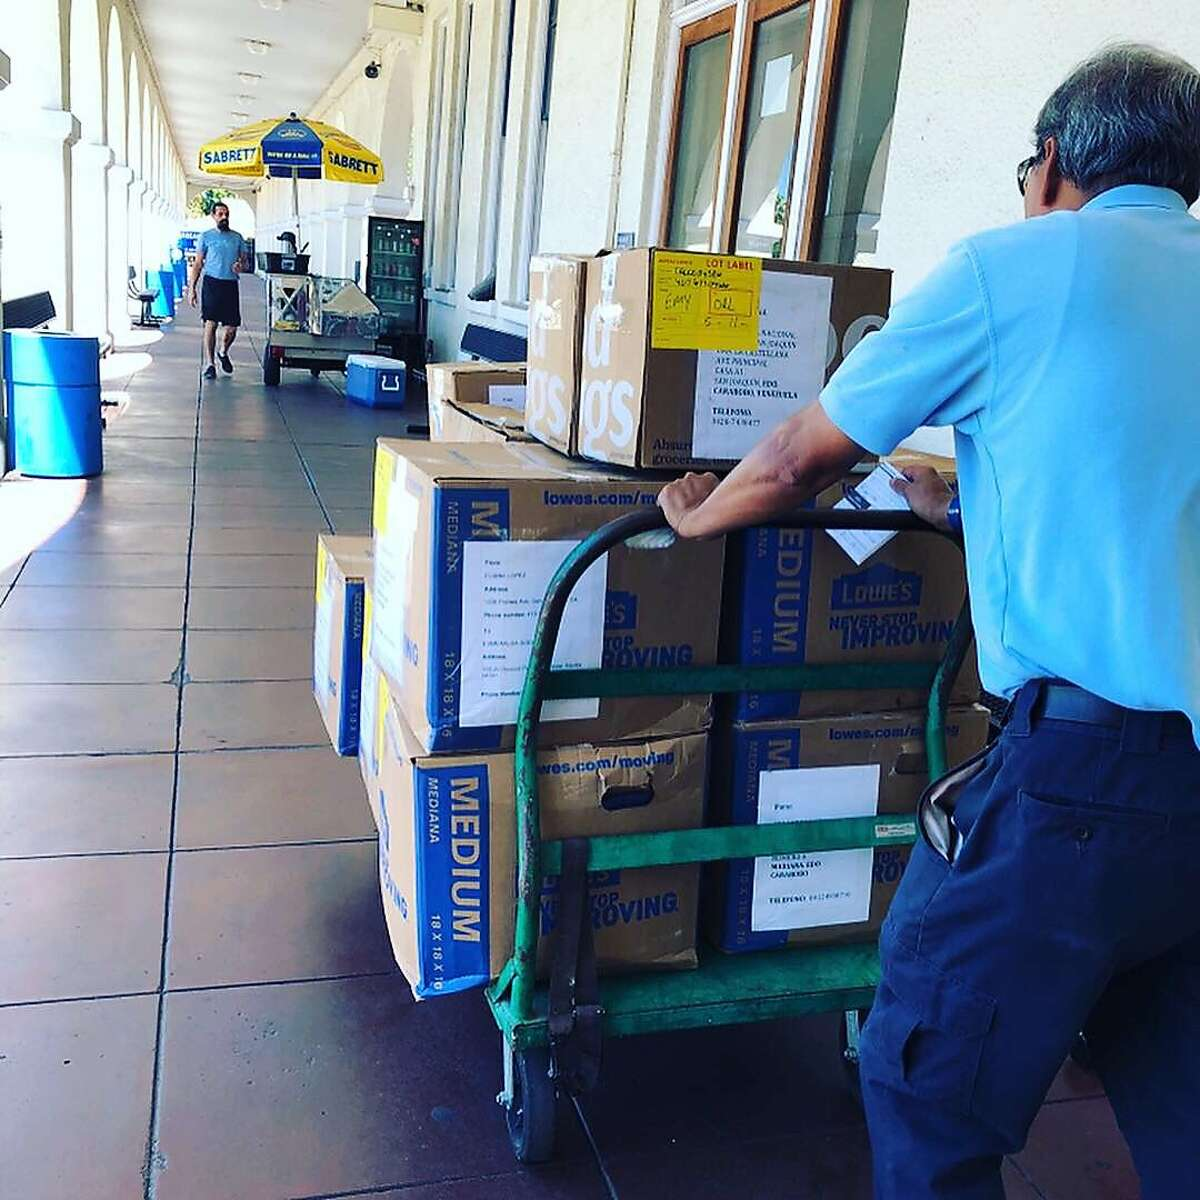 Moving those boxes for the babies of Venezuela